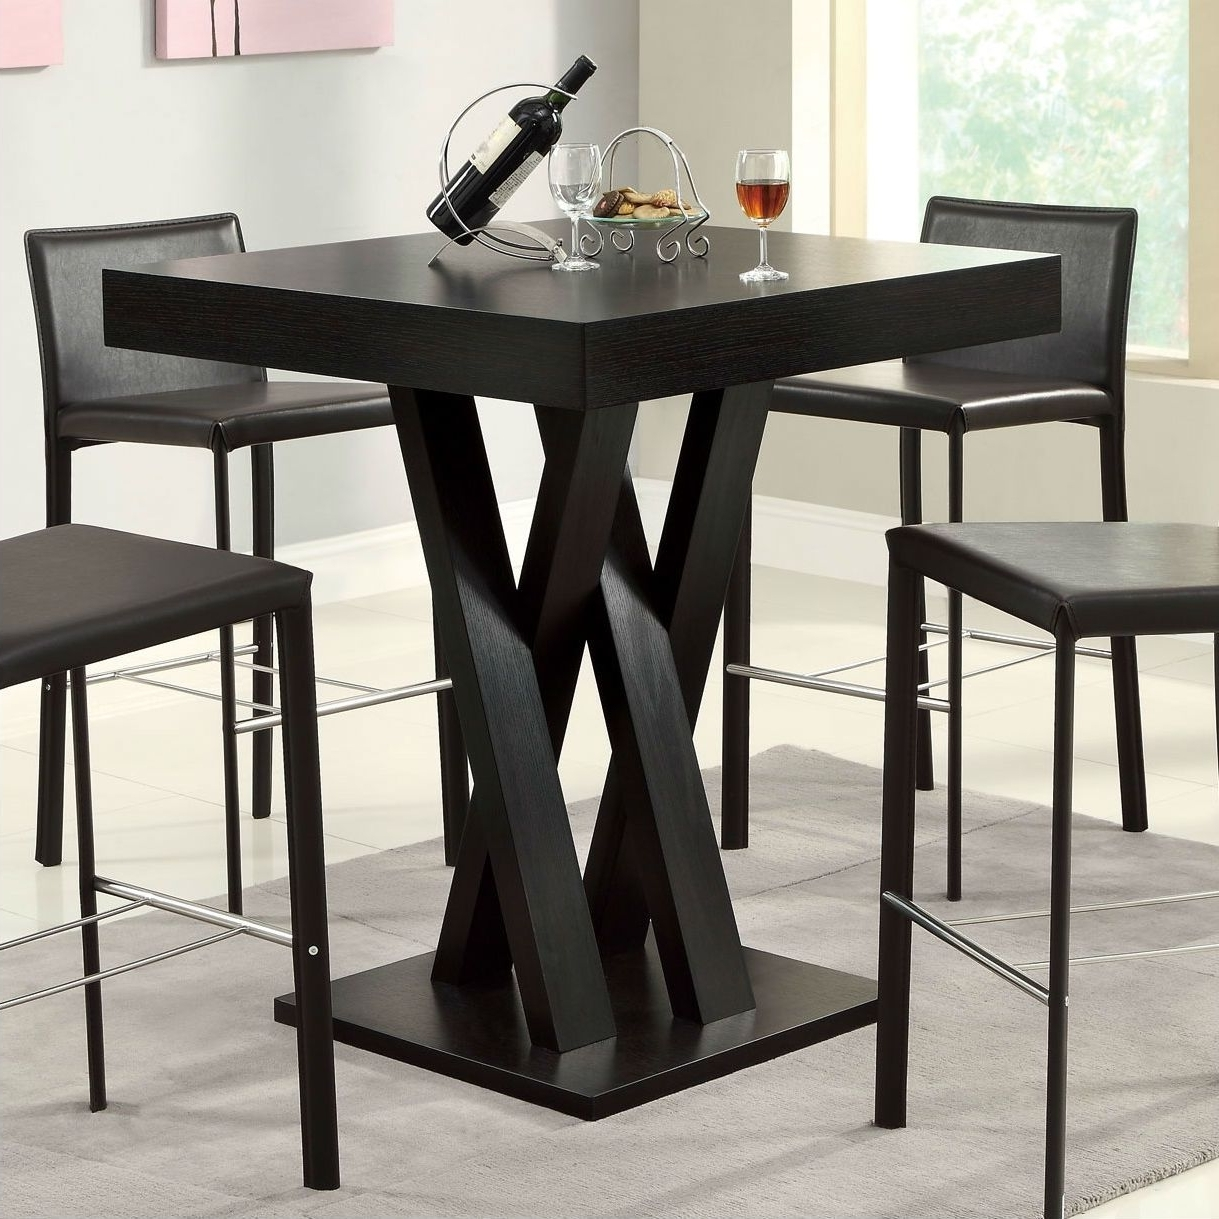 2017 Modern 40 Inch High Square Dining Table In Dark Cappuccino Finish In Dark Wood Square Dining Tables (Gallery 23 of 25)